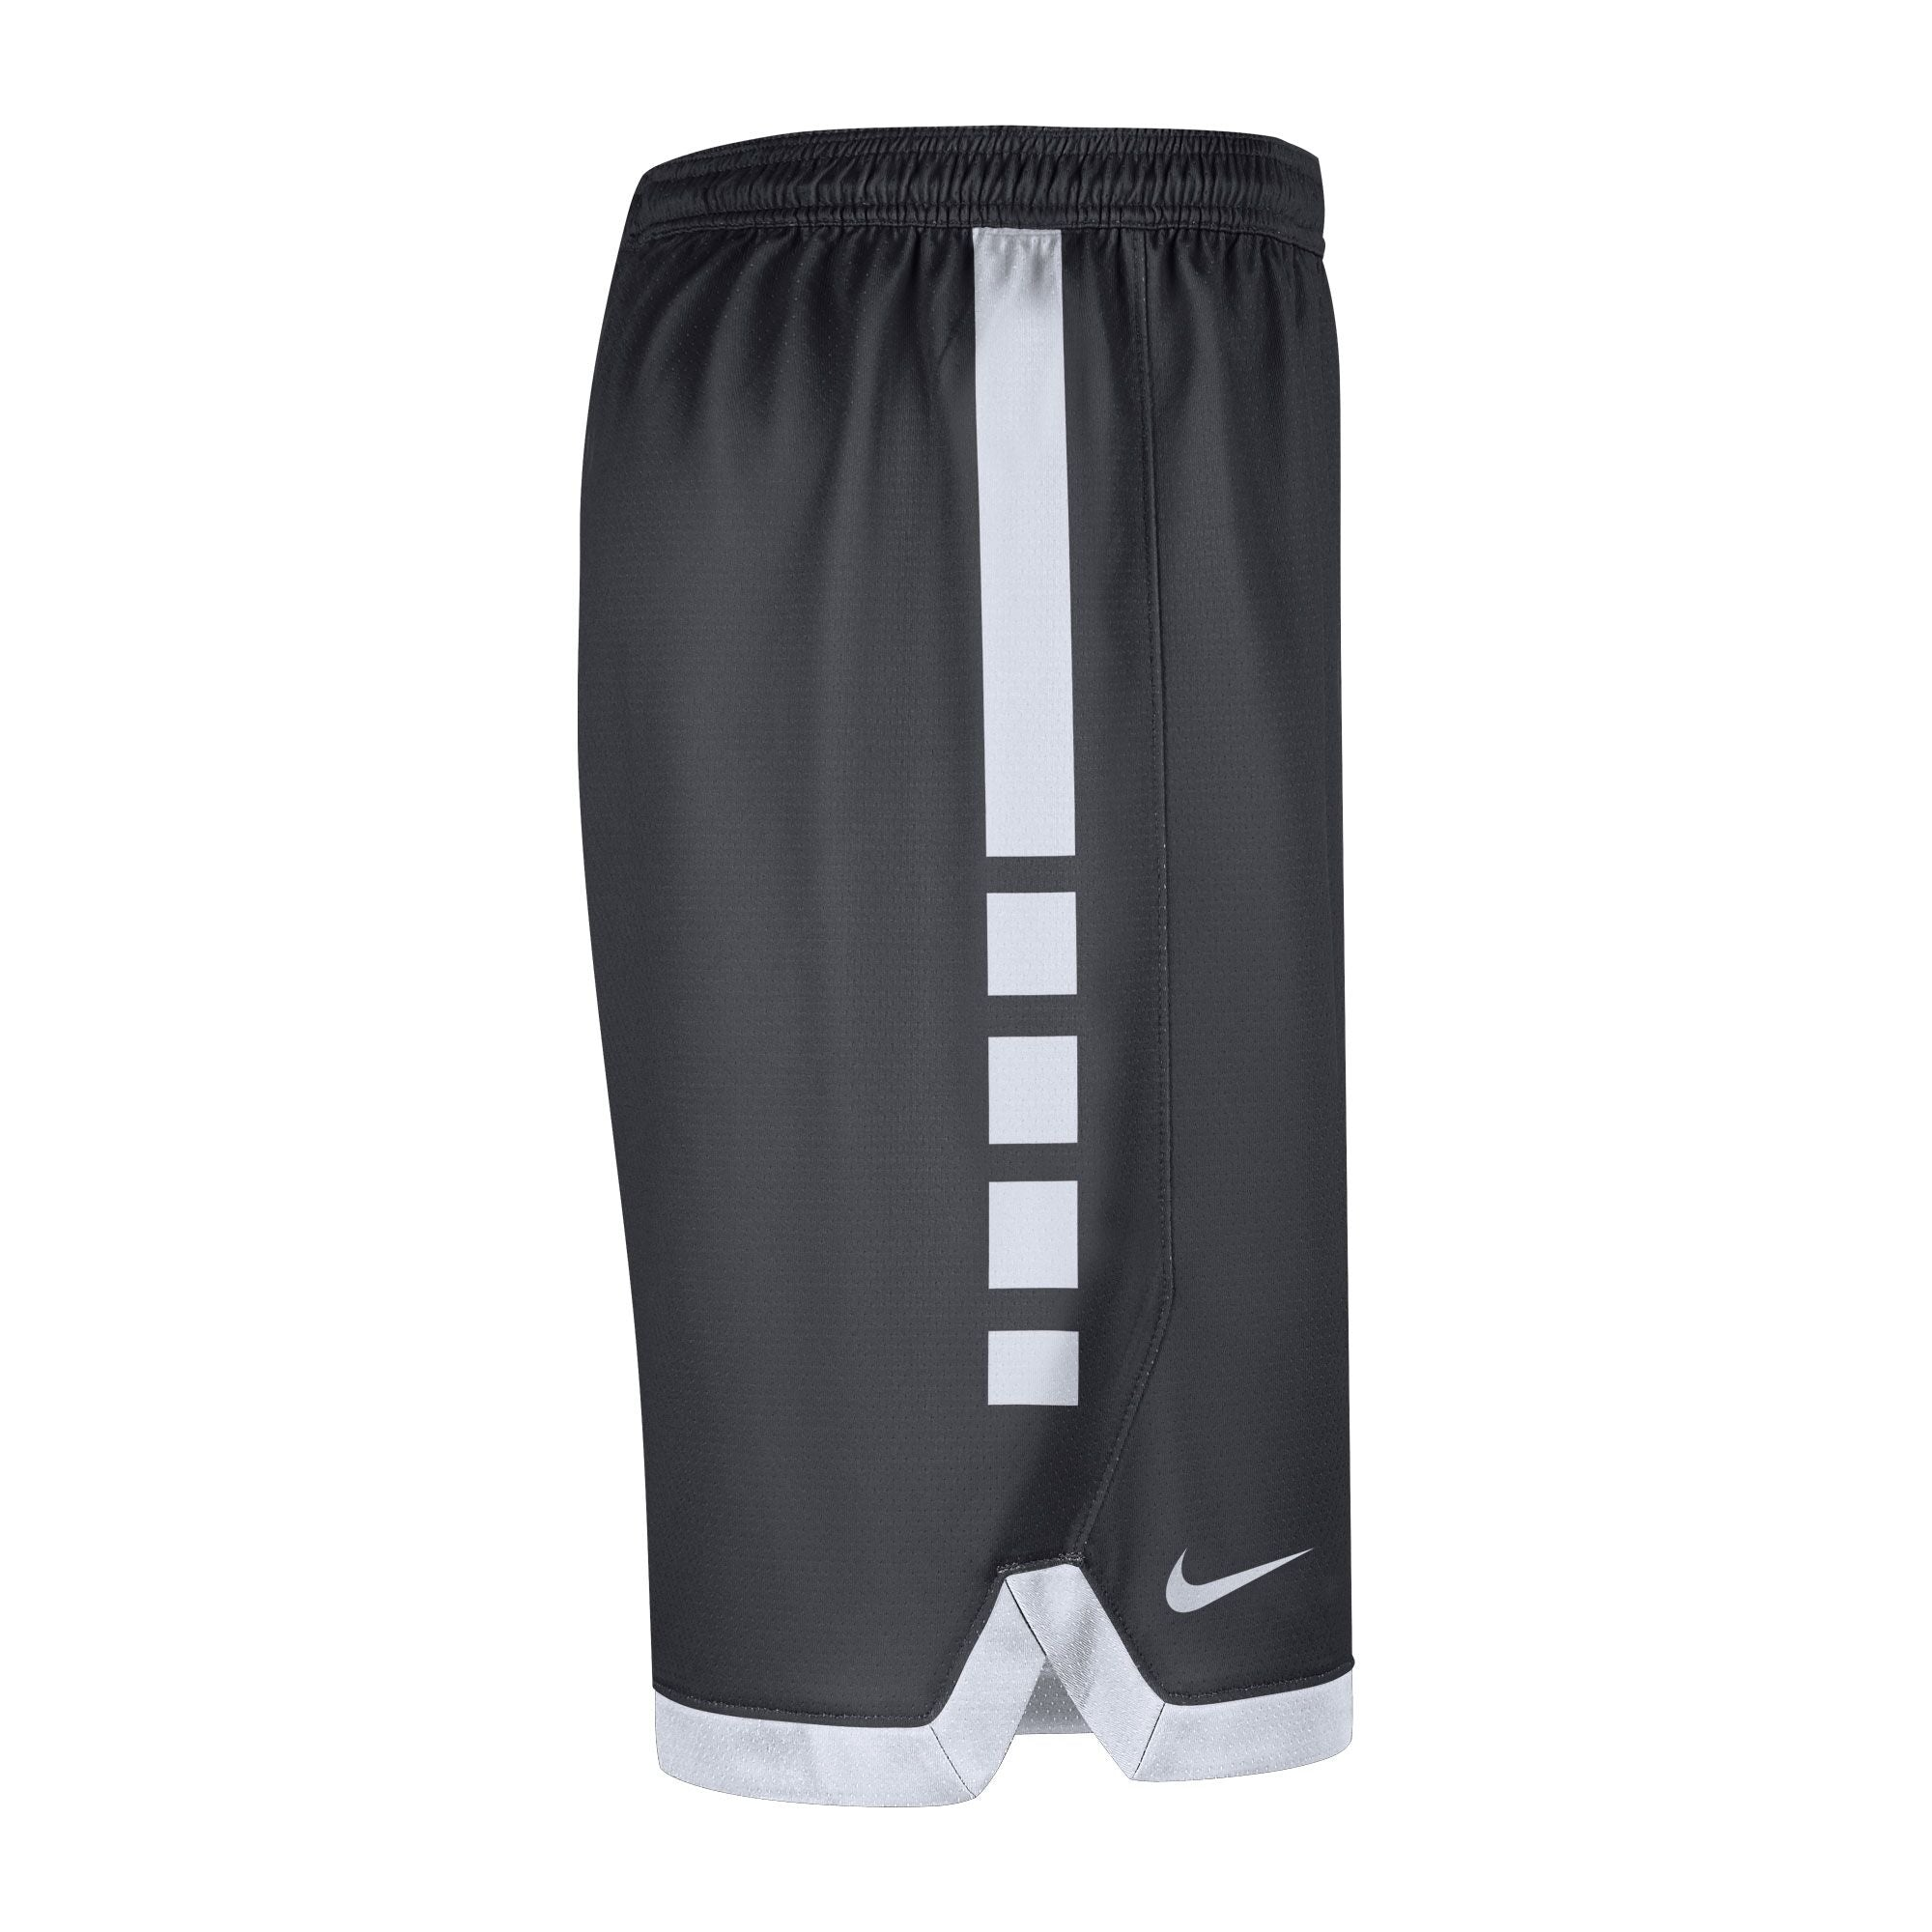 Elite Gym Shorts